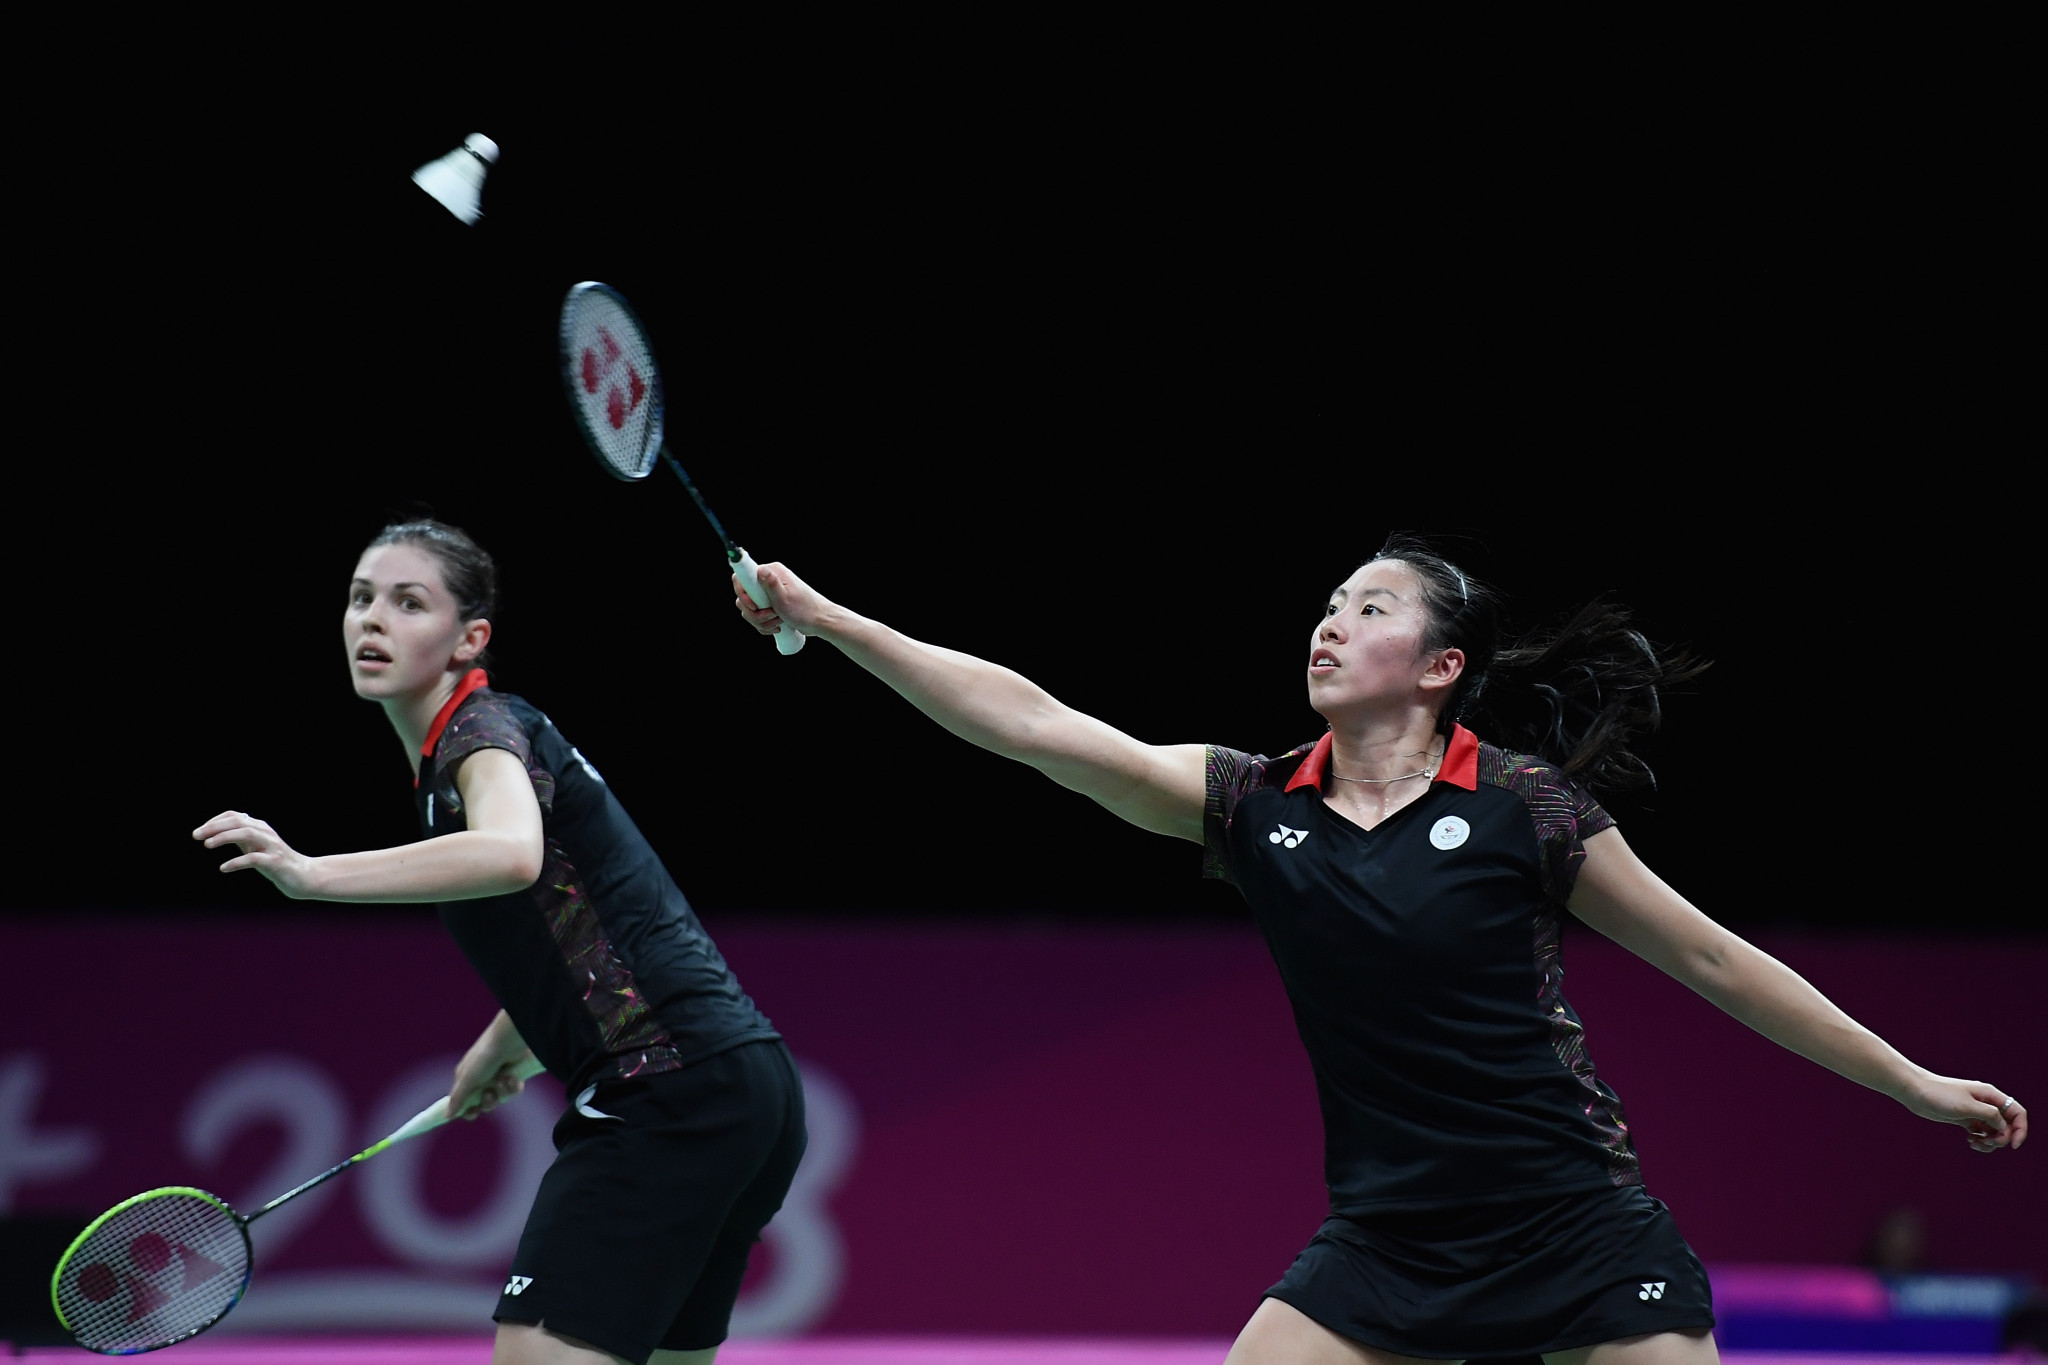 Badminton competition would reportedly take place at the venue during the Commonwealth Games ©Getty Images